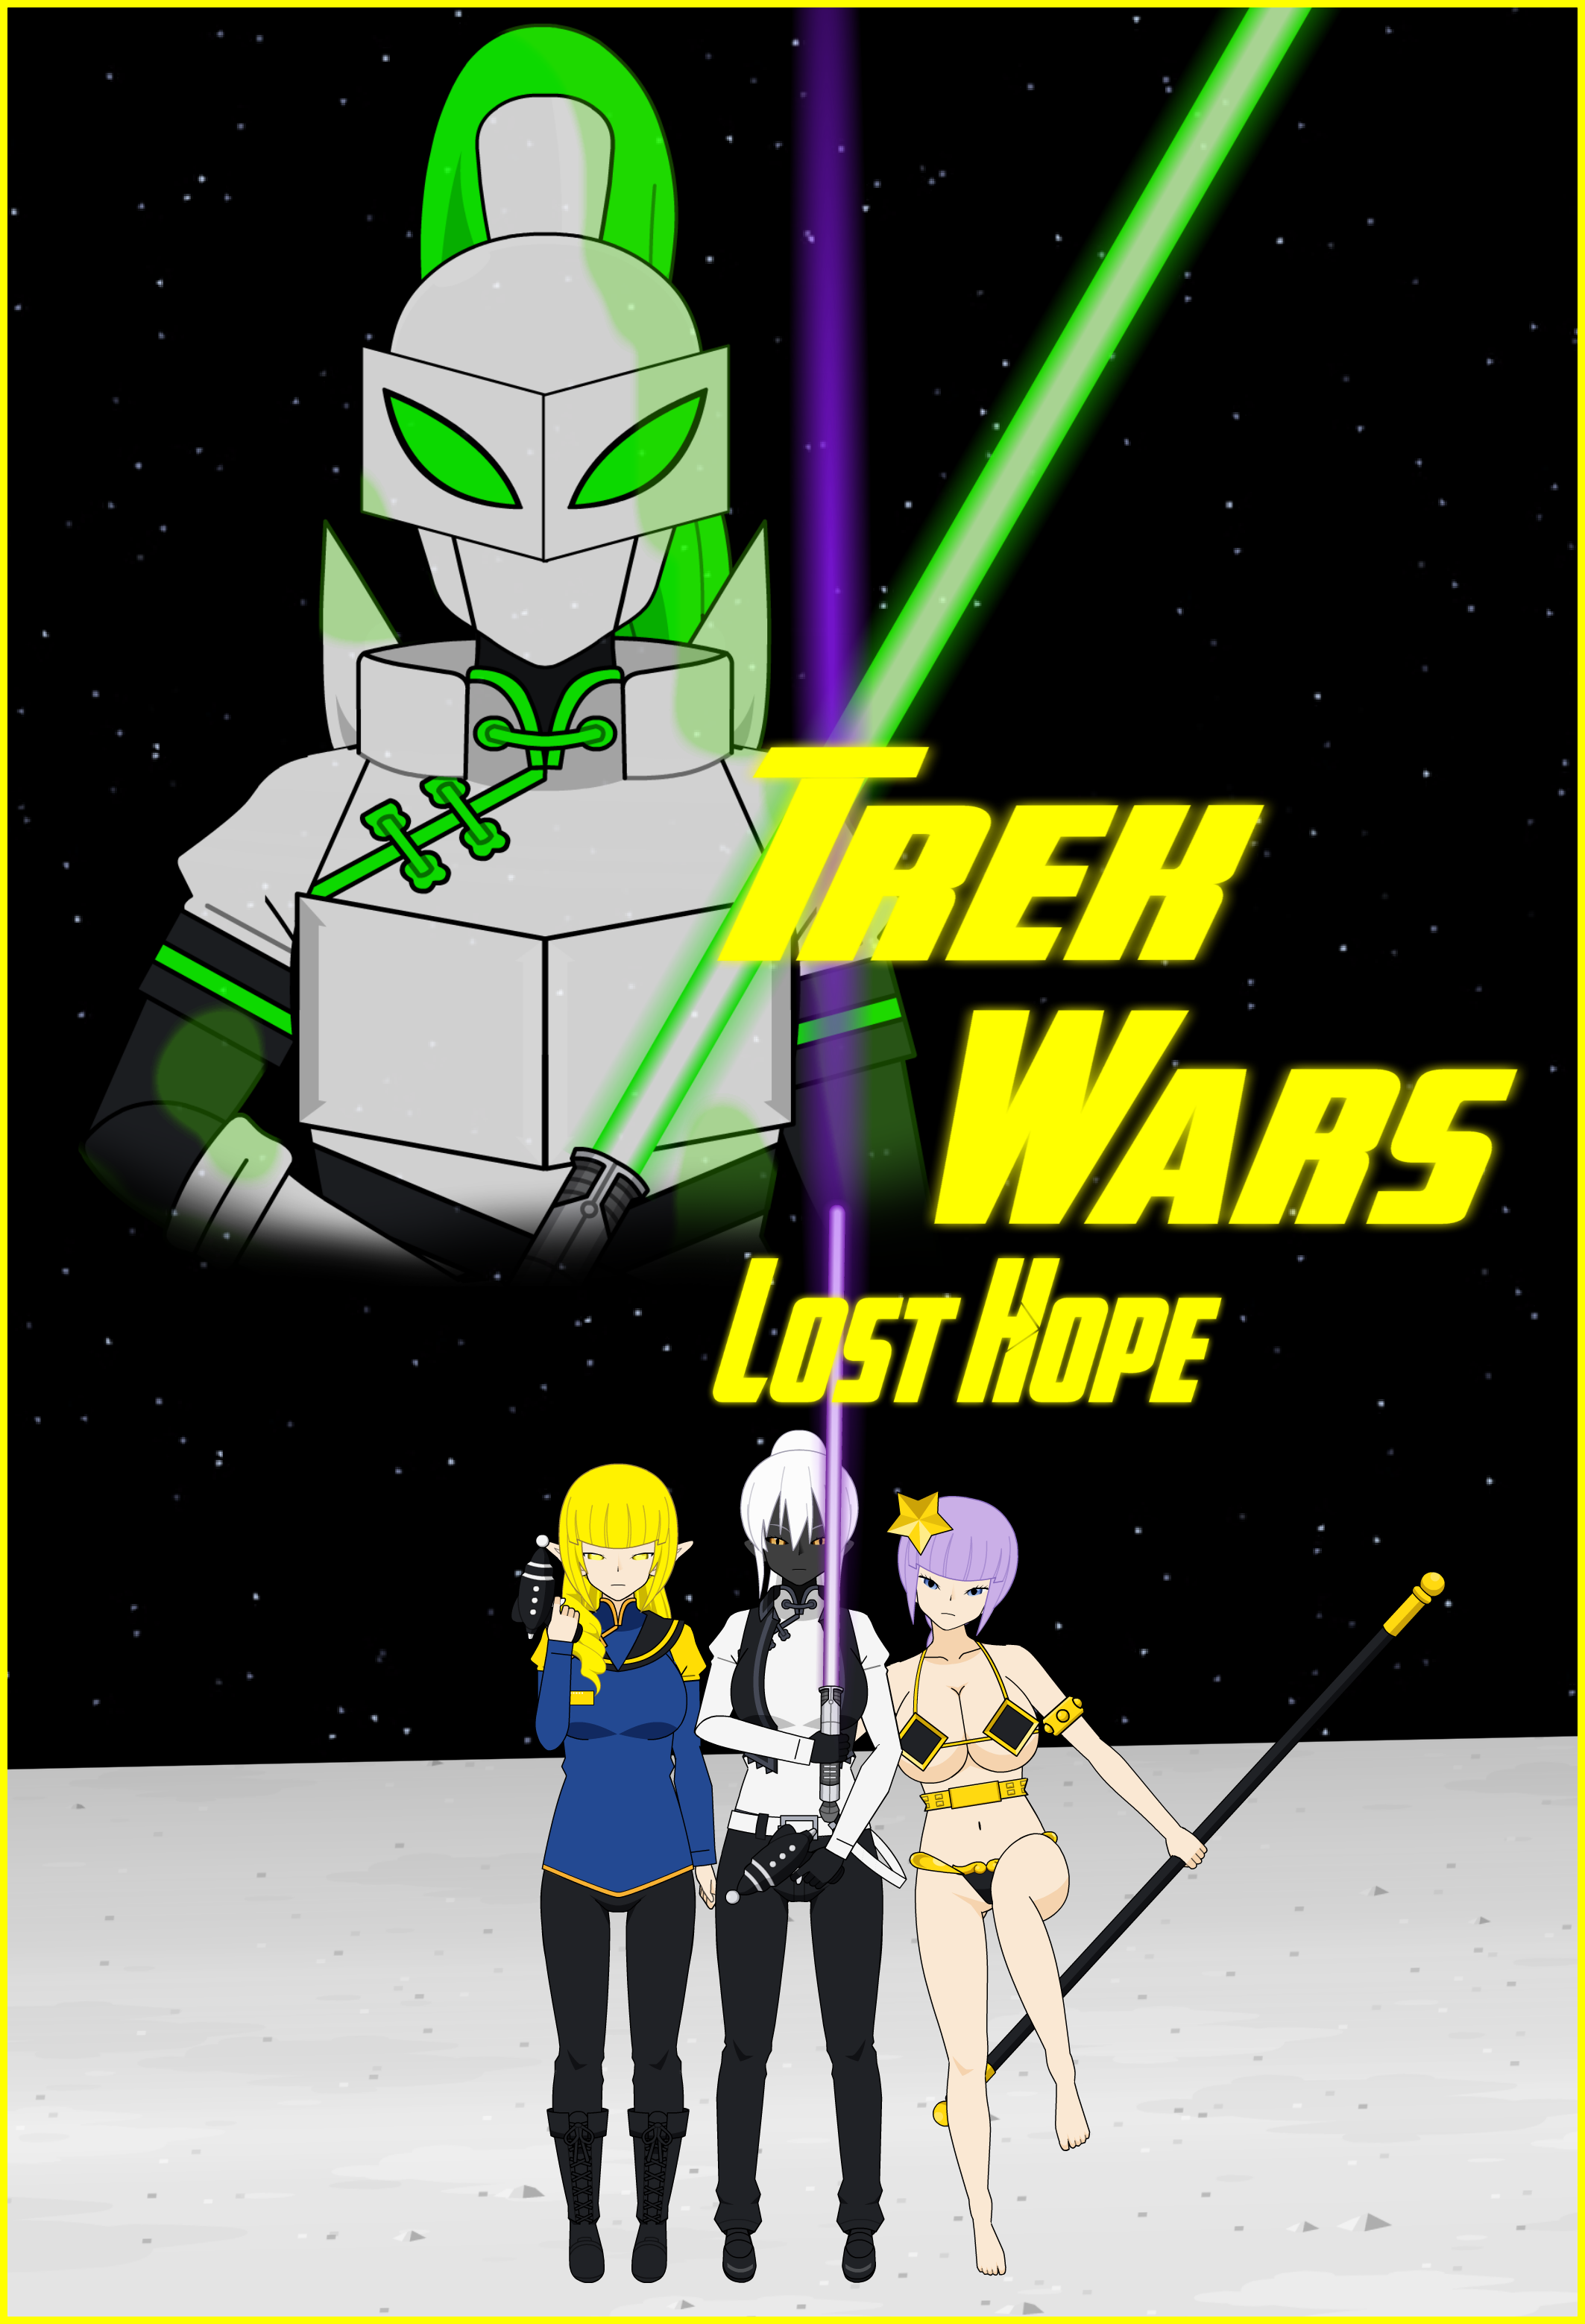 Trek Wars: Lost Hope